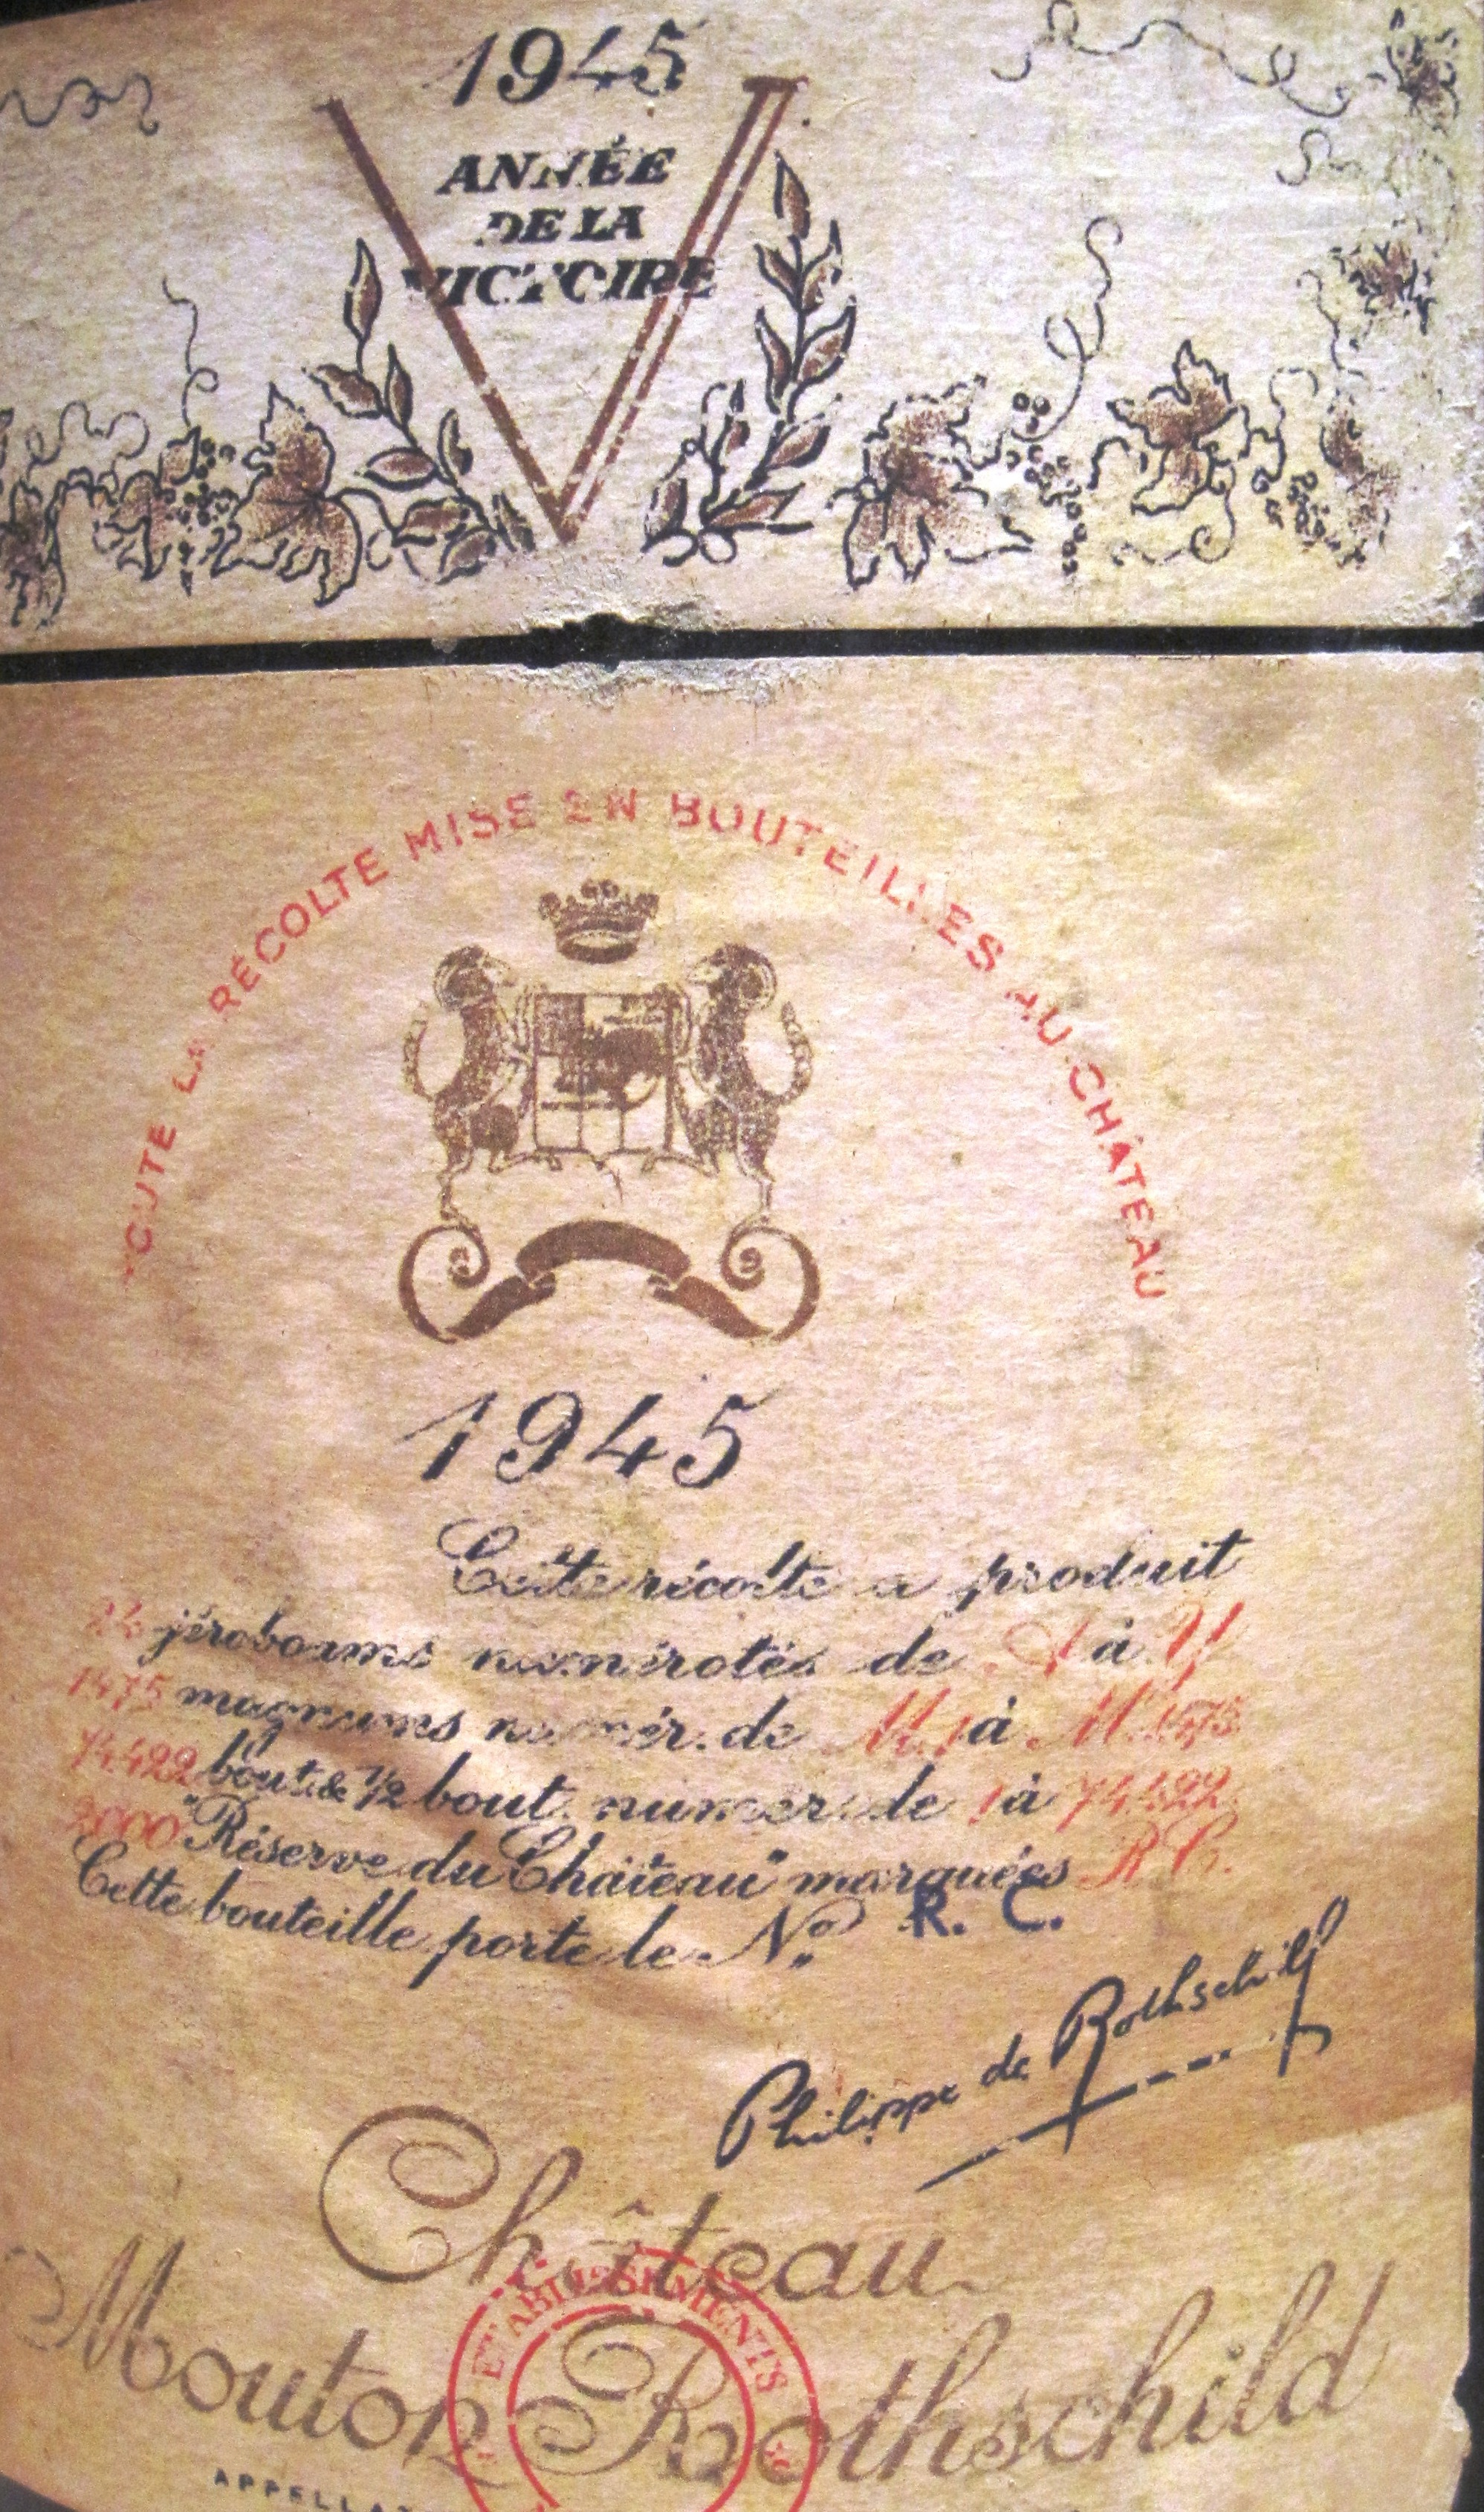 Mouton Rothschild rare wine label 1945